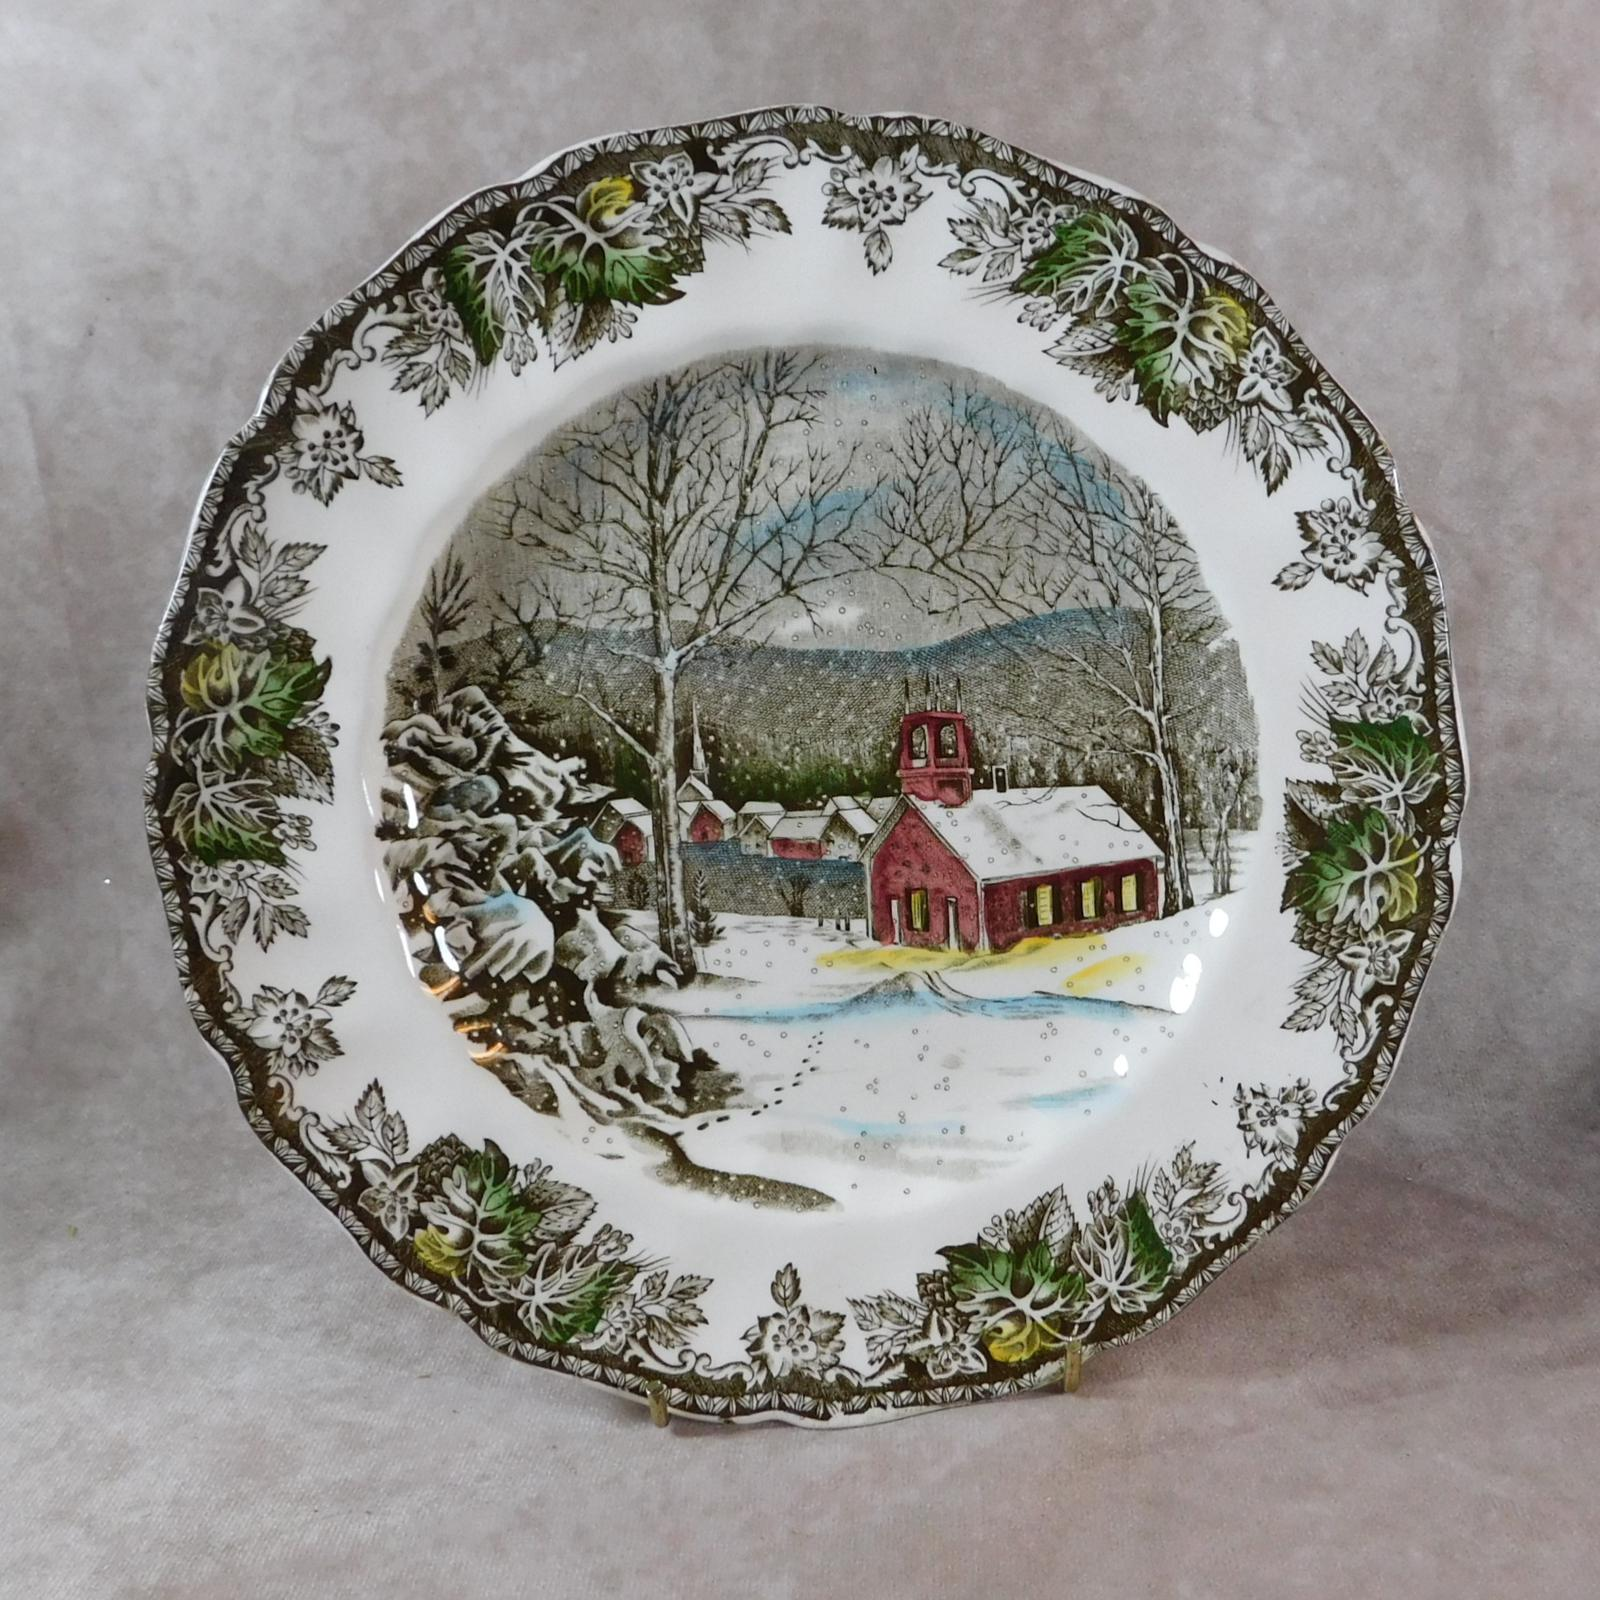 Johnson Brothers, The Friendly Village Series, The School House Plate (1 of 1)